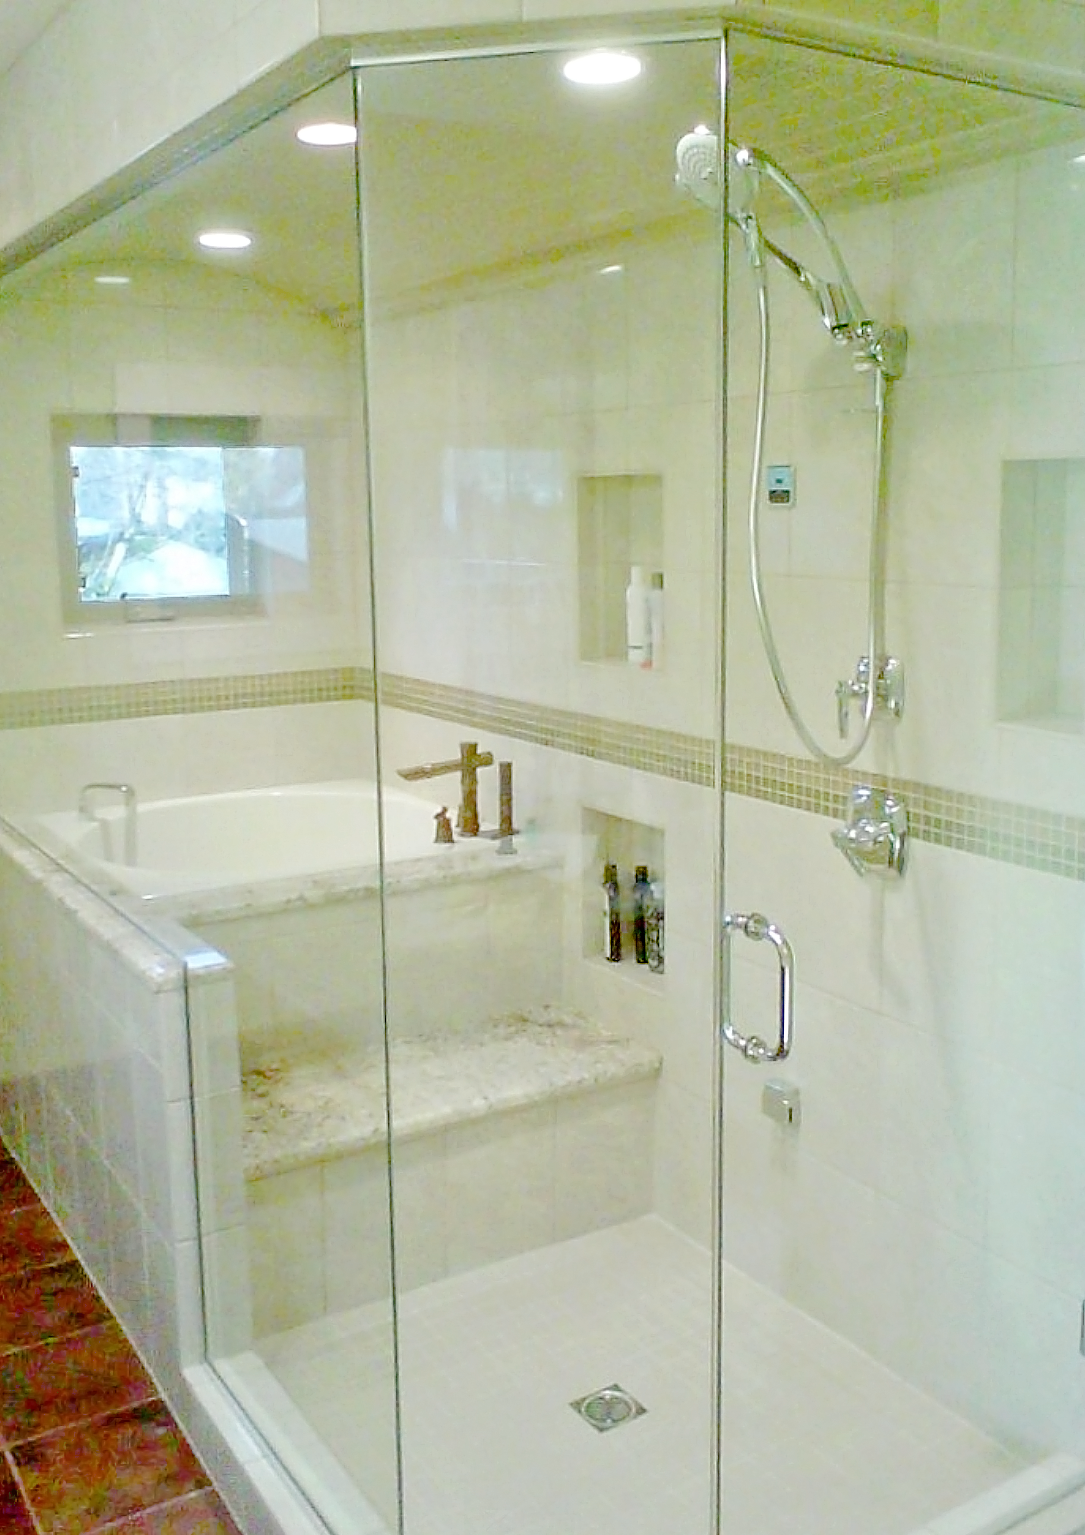 Soak Badkamer Walk In Shower With Japanese Soaking Tub Just The Layout I Was